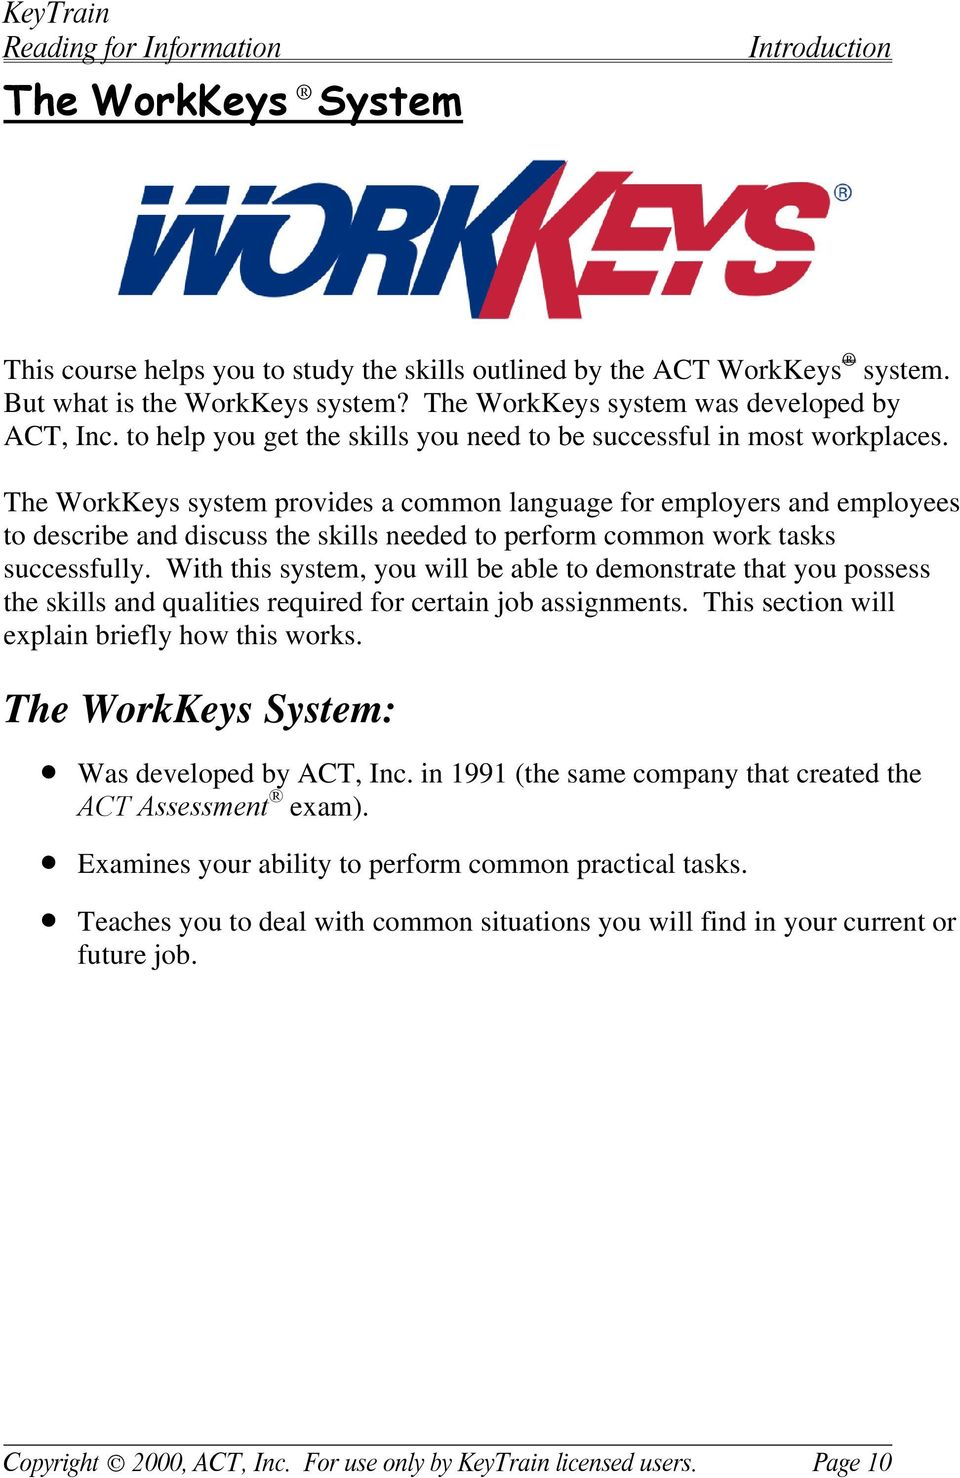 The WorkKeys system provides a common language for employers and employees to describe and discuss the skills needed to perform common work tasks successfully.